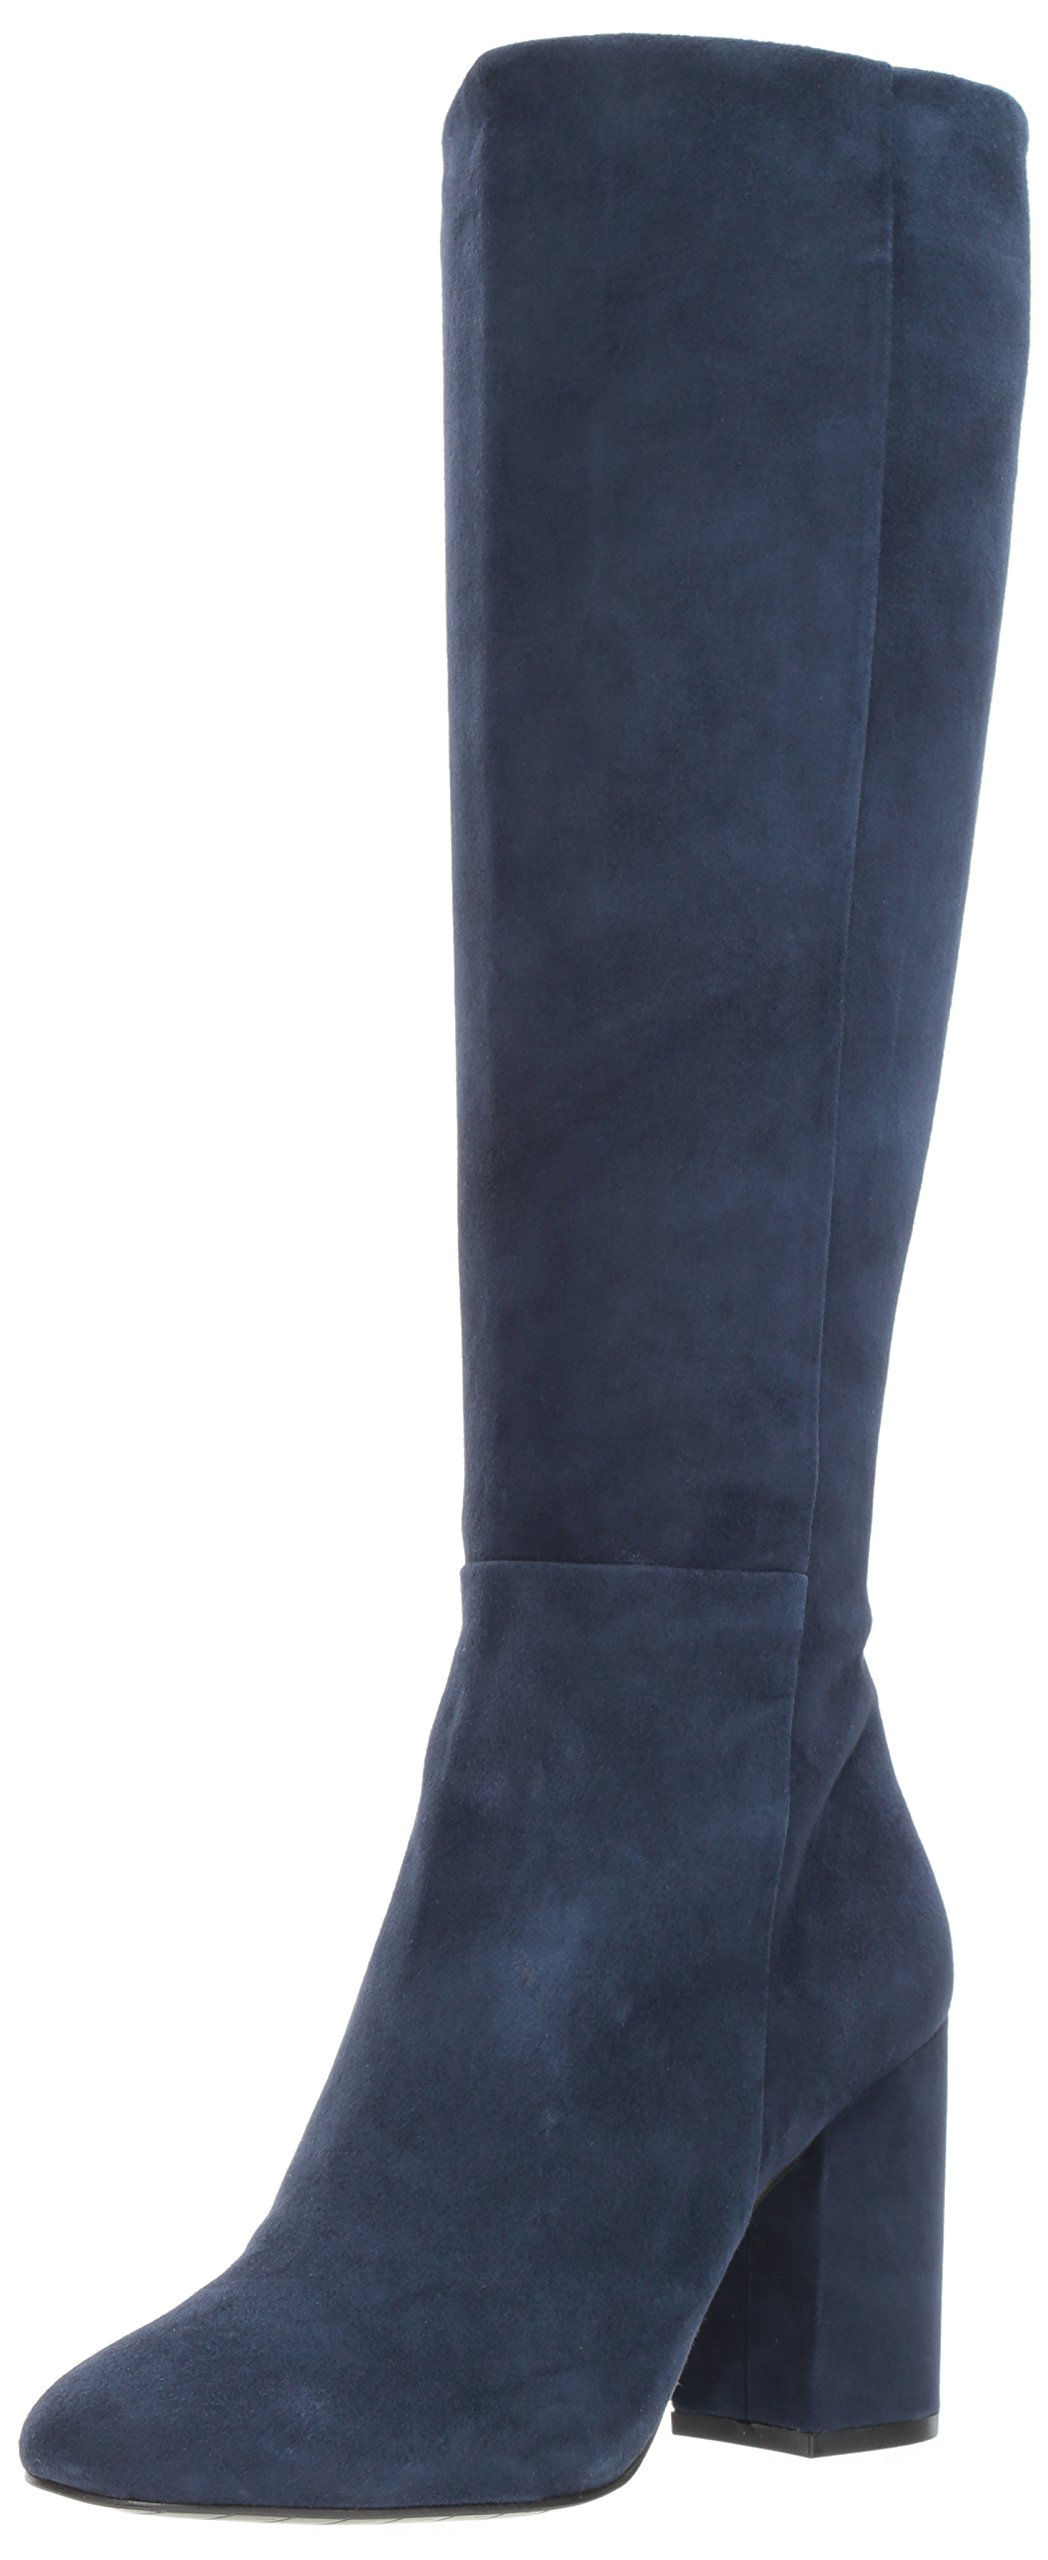 Kenneth Cole New York Women's Clarissa Knee High Tall Stacked Heel Engineer Boot, Navy, 9 M US